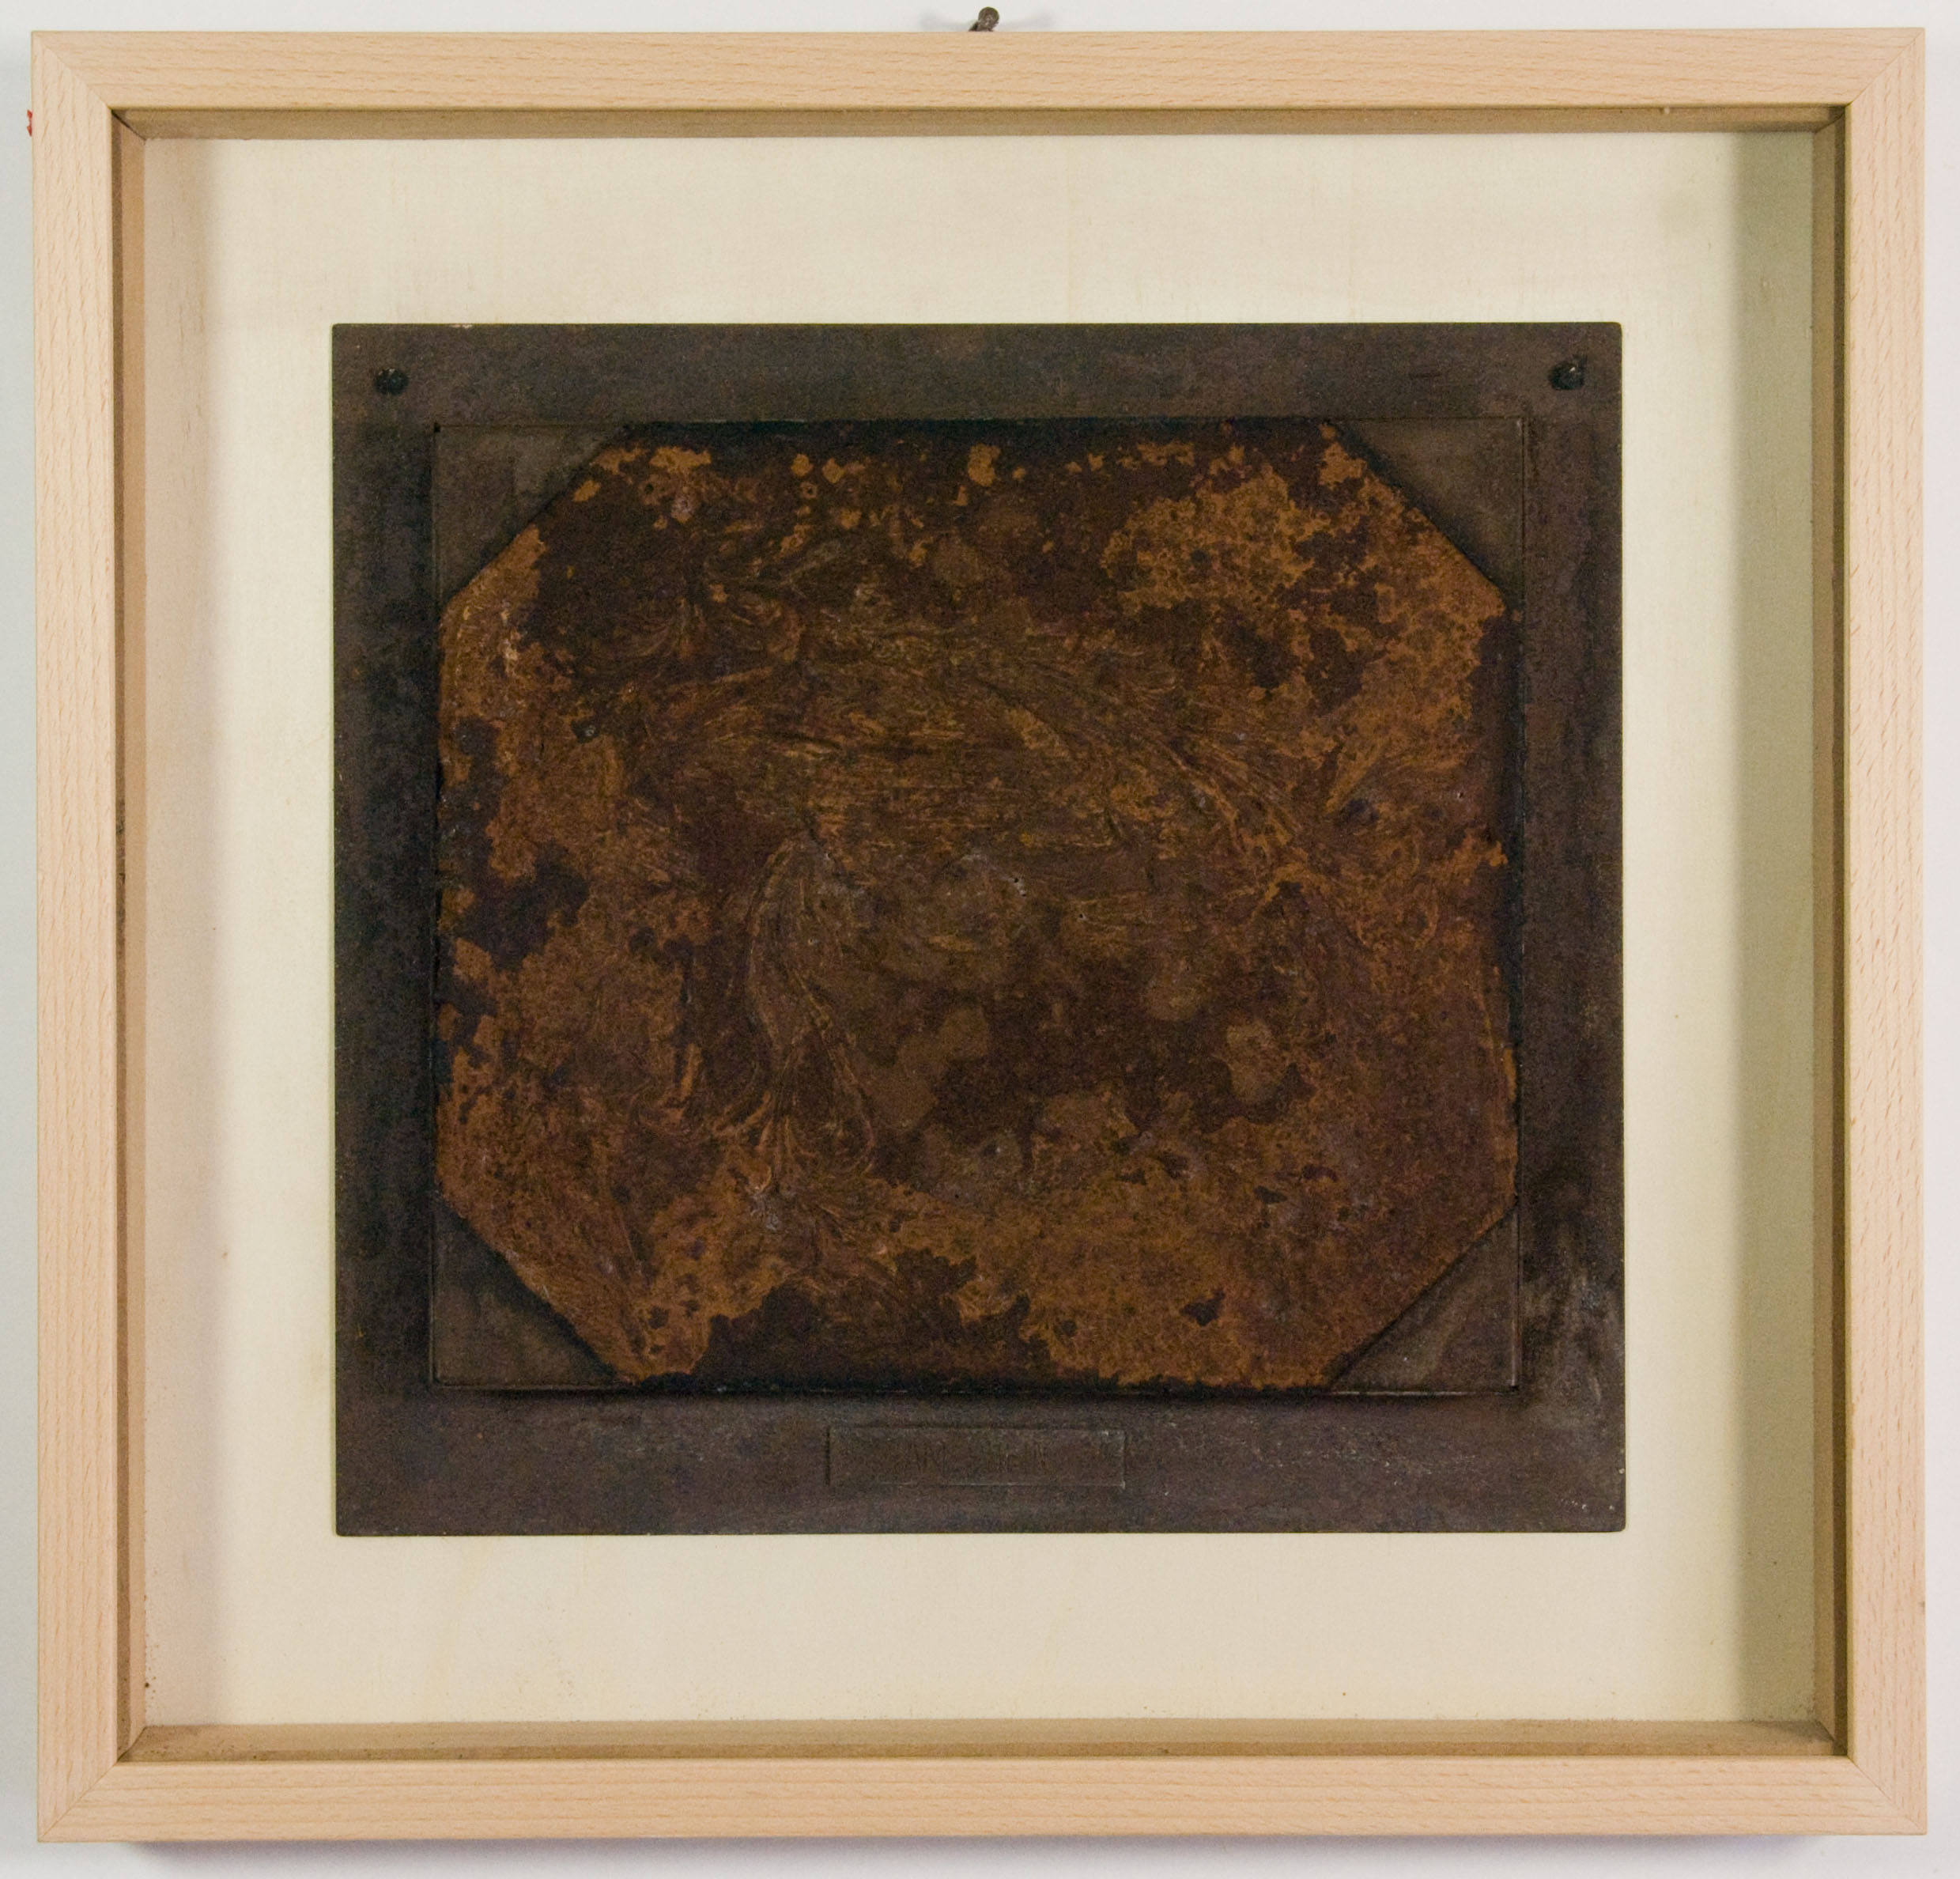 Dieter Roth,  Am Rhein , chocolate cast into iron frame, 33x35x3cm, 1968